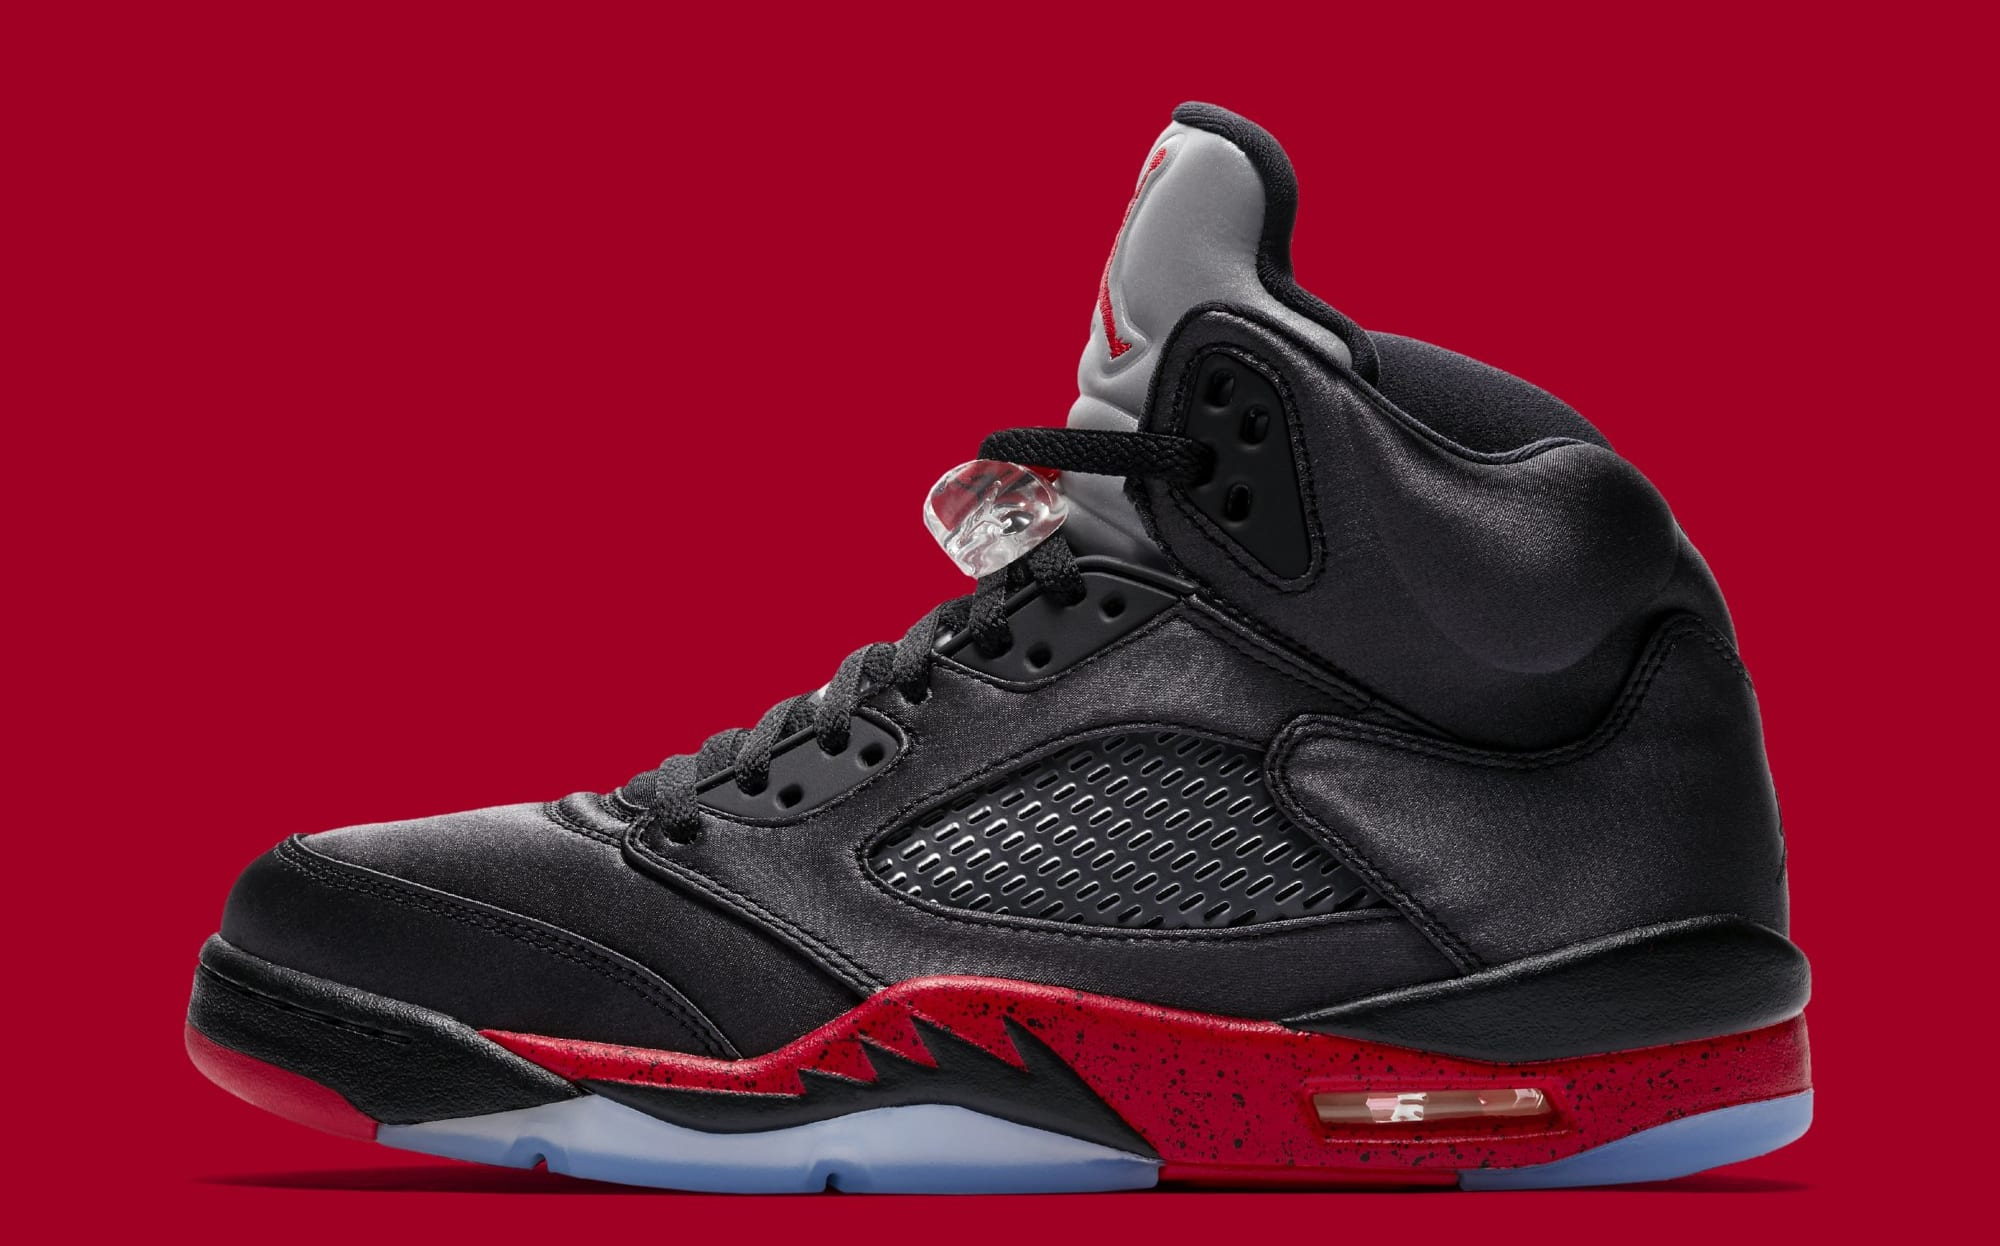 brand new 68839 f16ae Air Jordan 5 'Black/University Red' Release Date | Sole ...